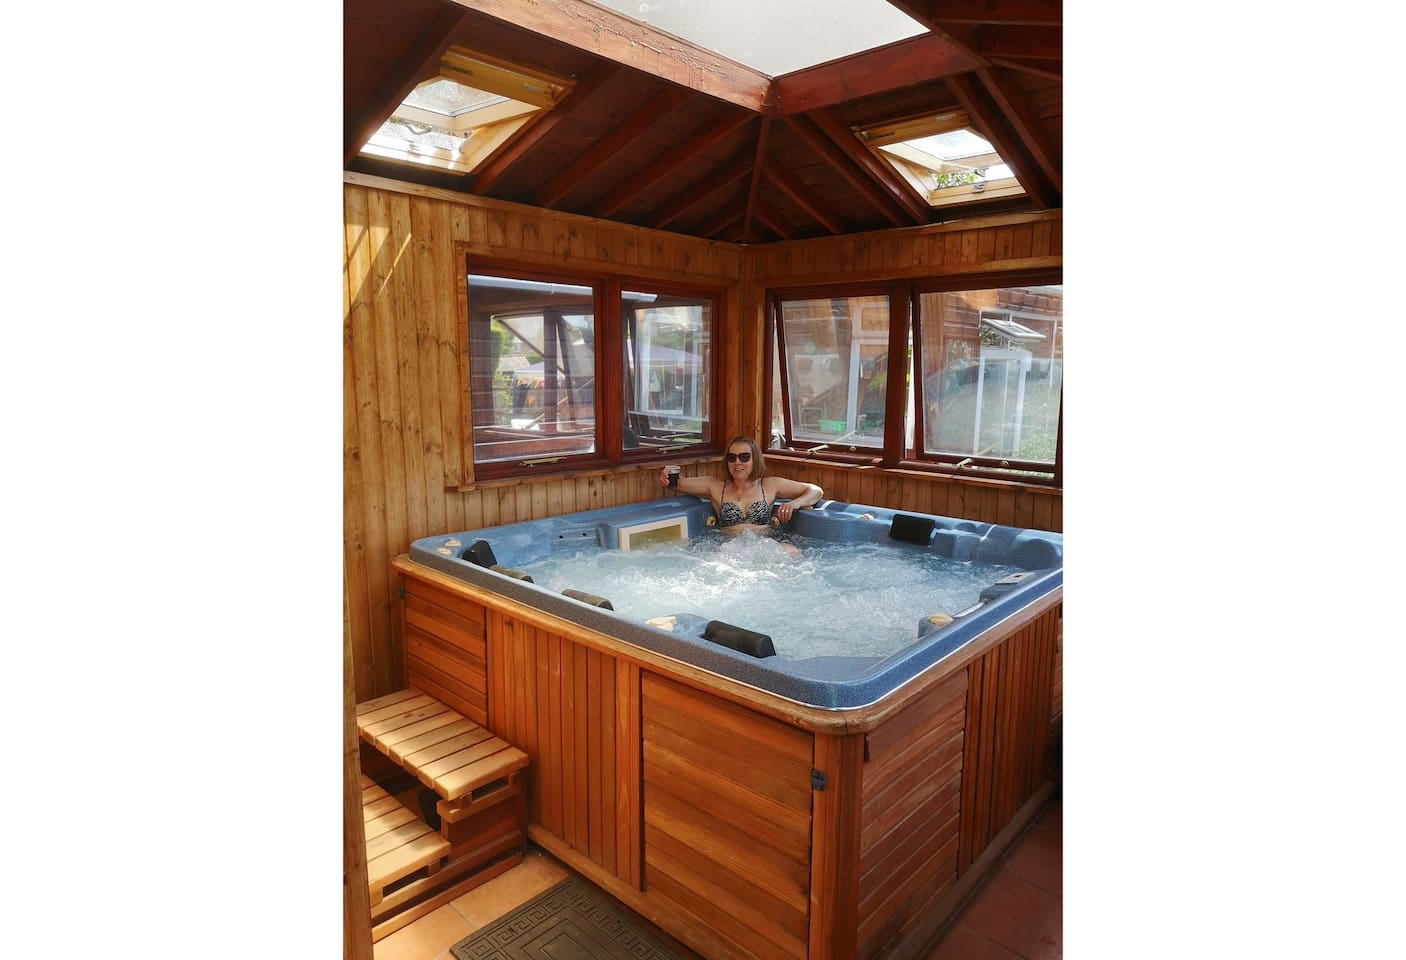 Inside the Hot tub cabin, with blue tooth speaker and LED colour changing lights. Secluded and private.